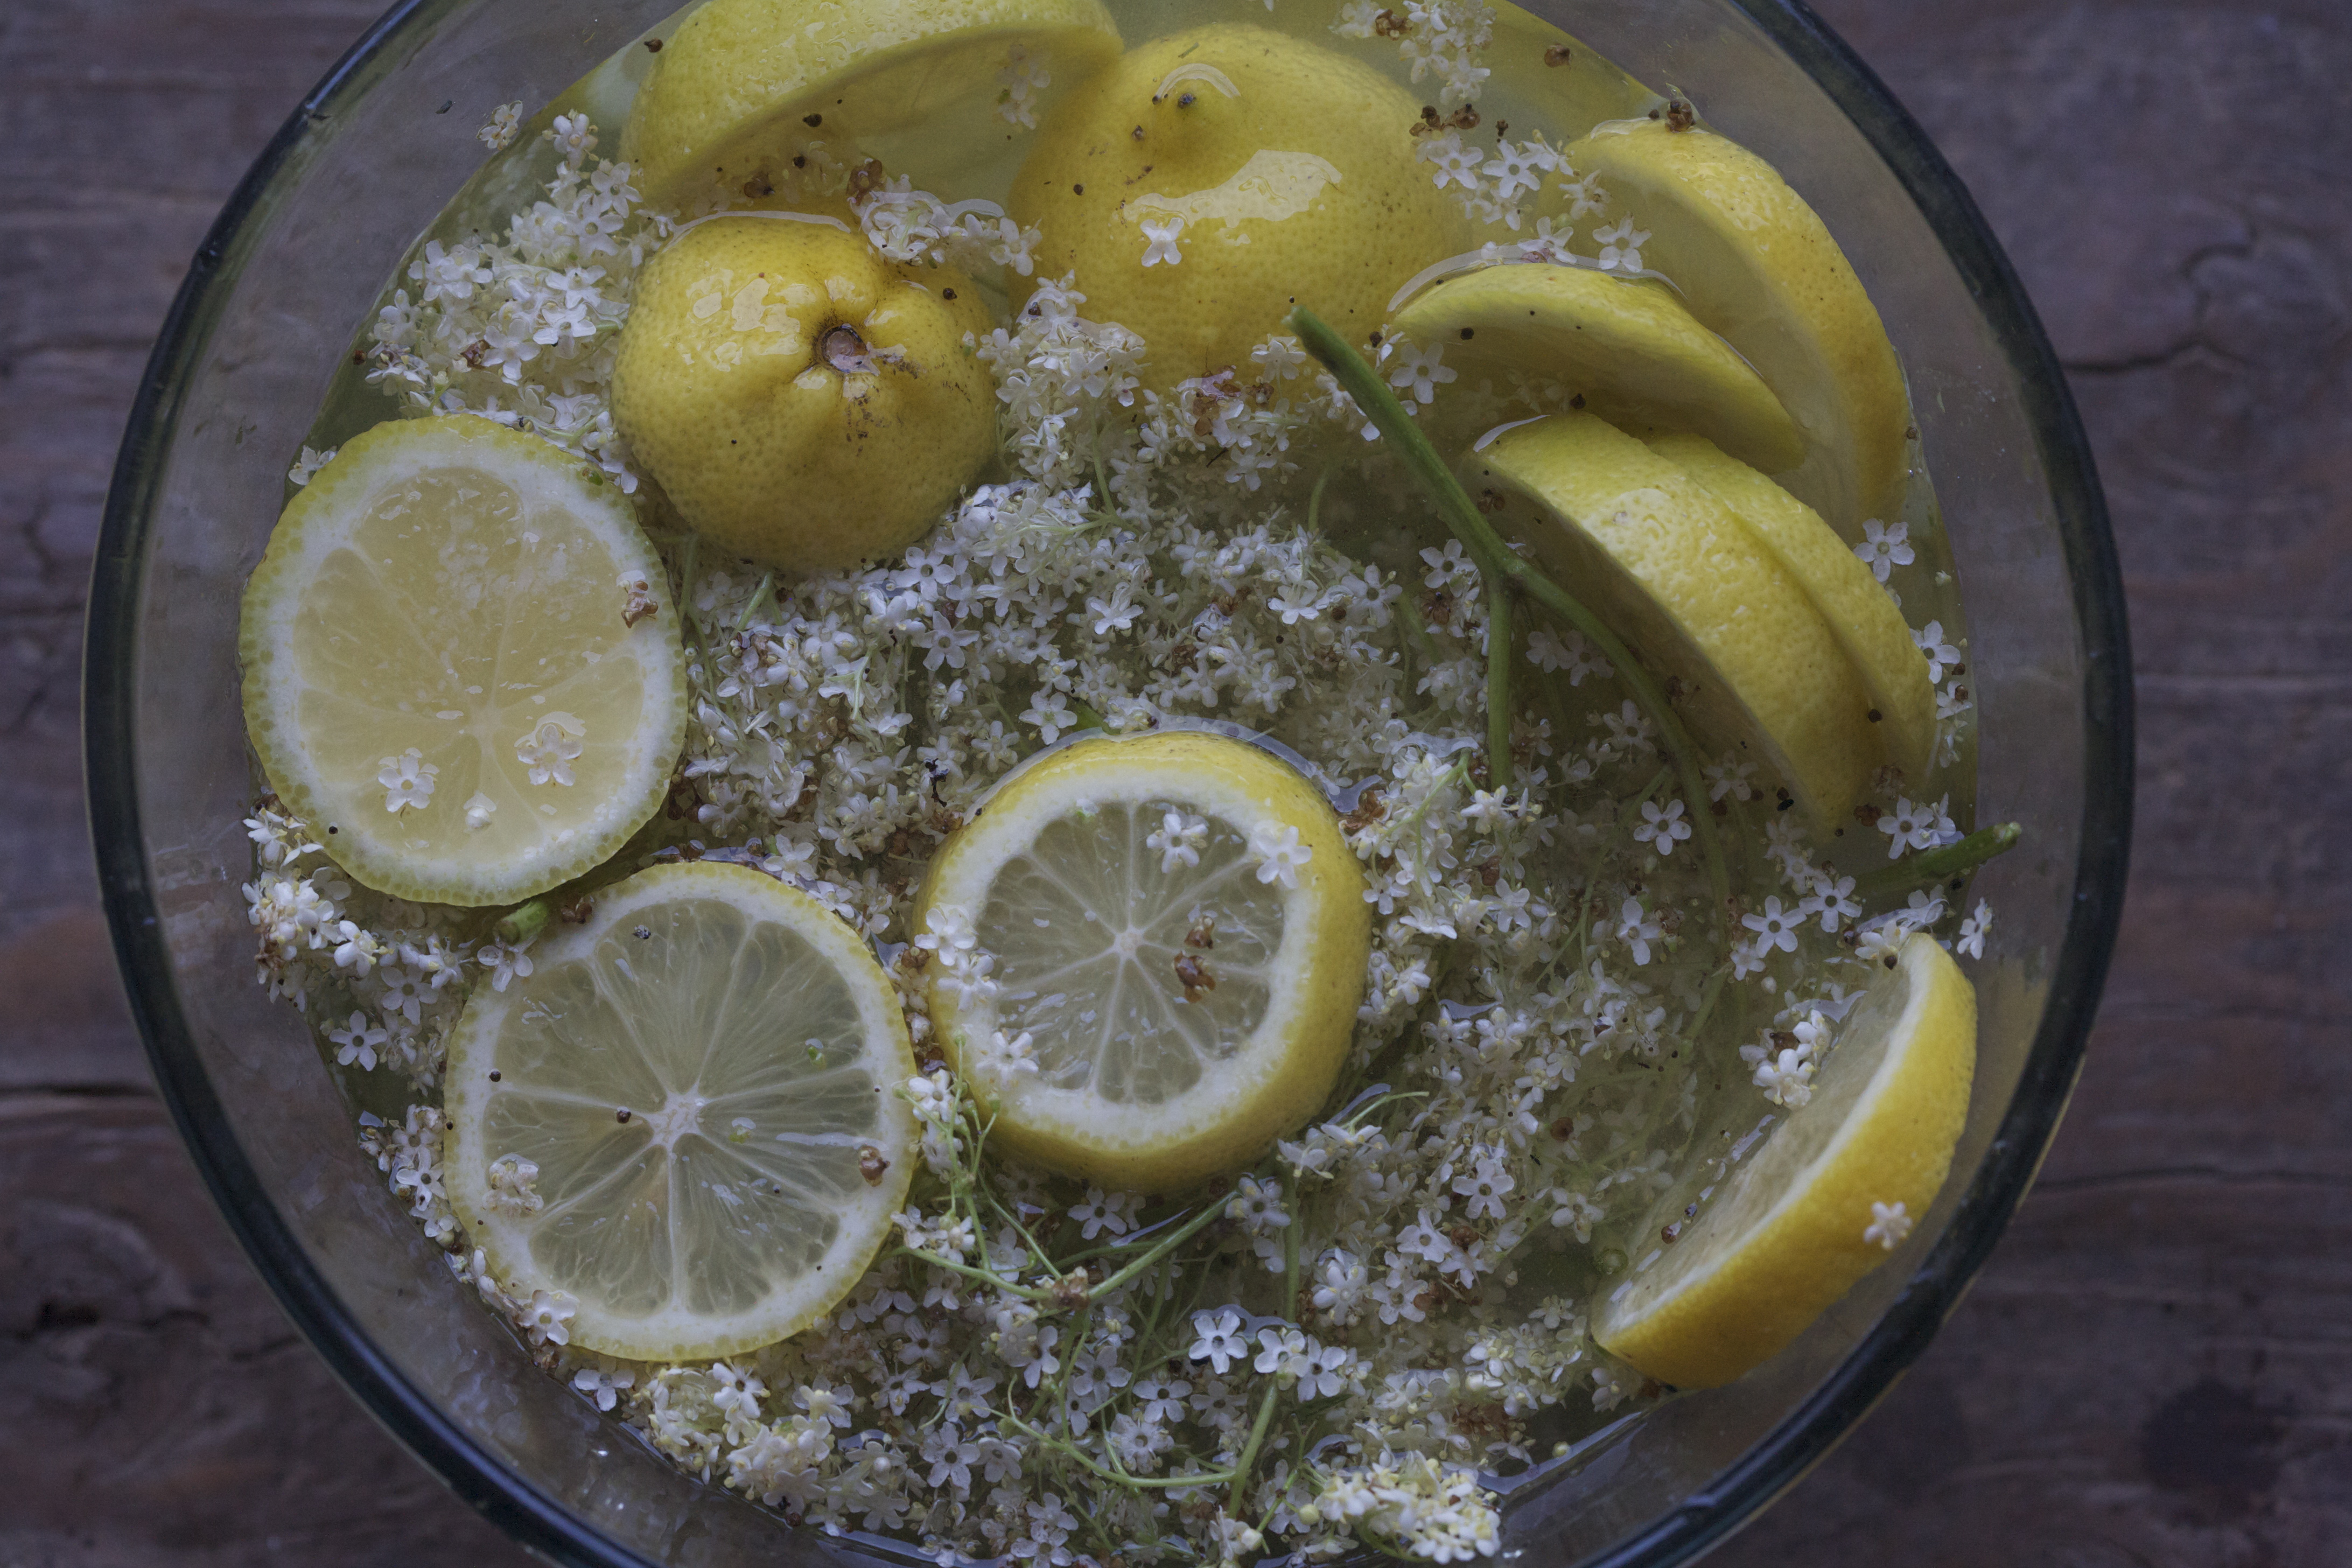 Elderflower cordial recipe dishmaps for Pomegranate molasses sainsburys